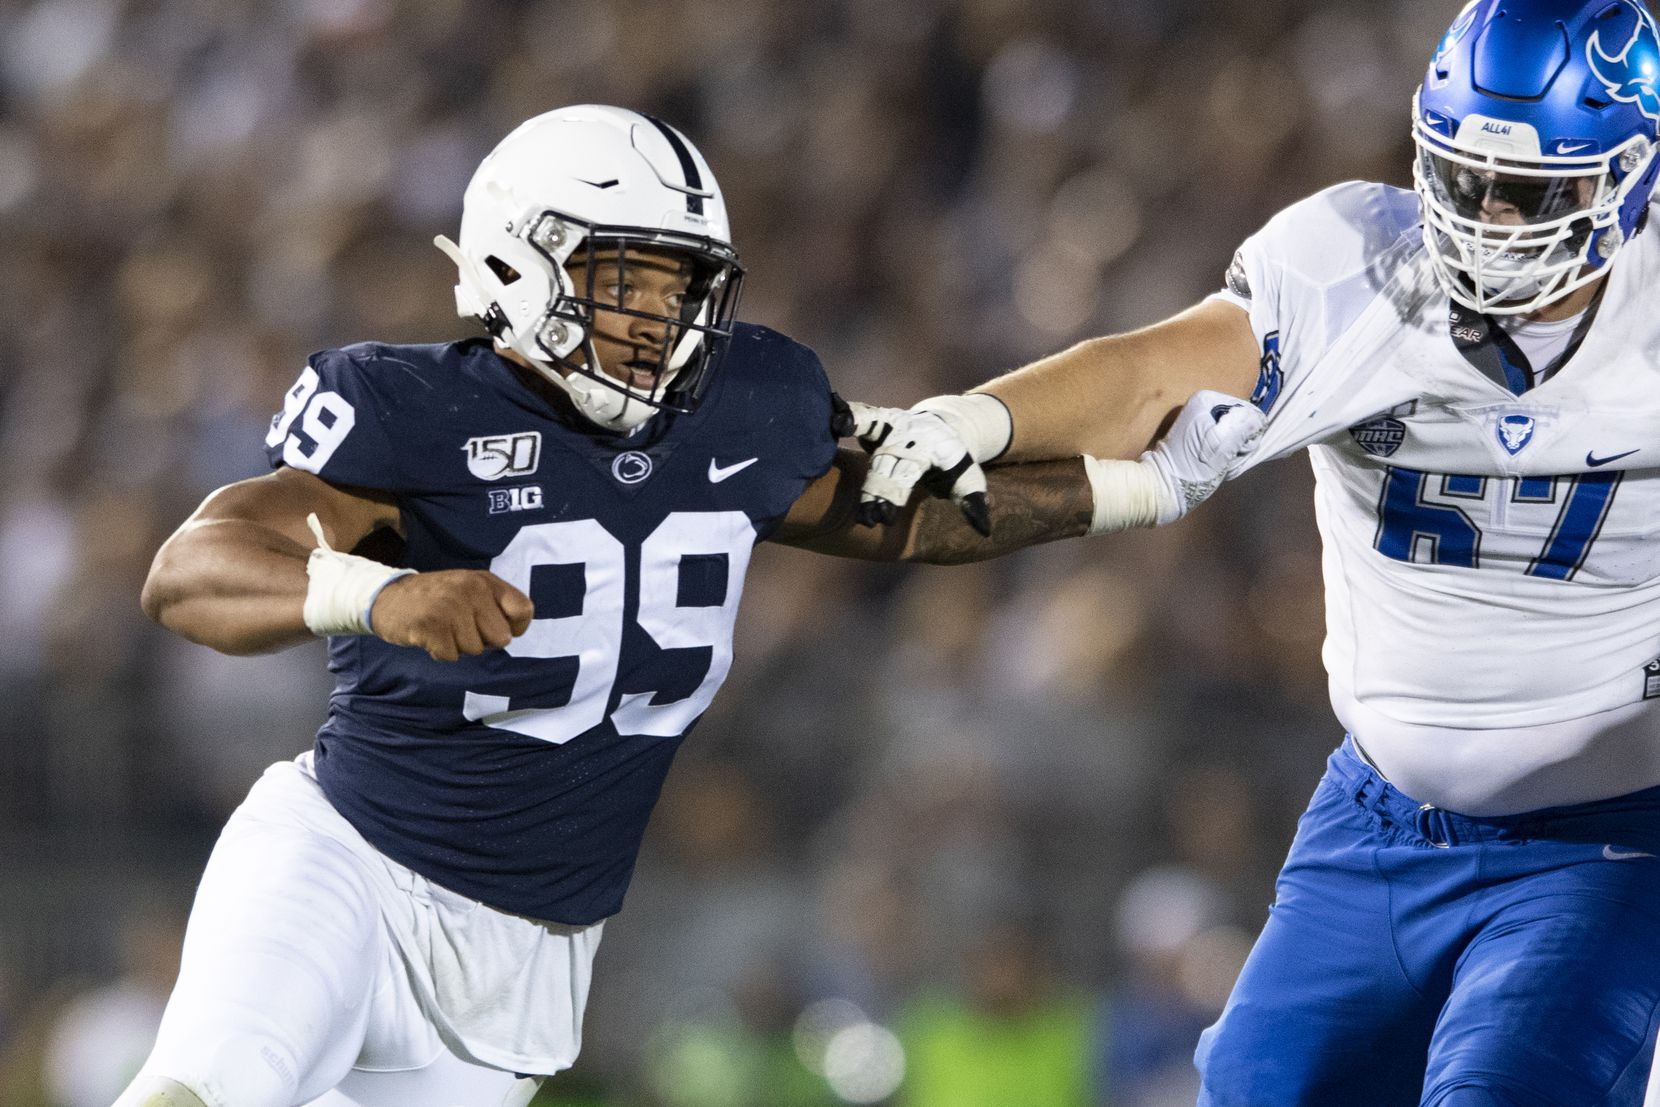 Penn State defensive end Yetur Gross-Matos (99) fights off a block by Buffalo offensive lineman Evin Ksiezarczyk (67) in the third quarter of an NCAA college football game in State College, Pa., on Saturday, Sept. 7, 2019.